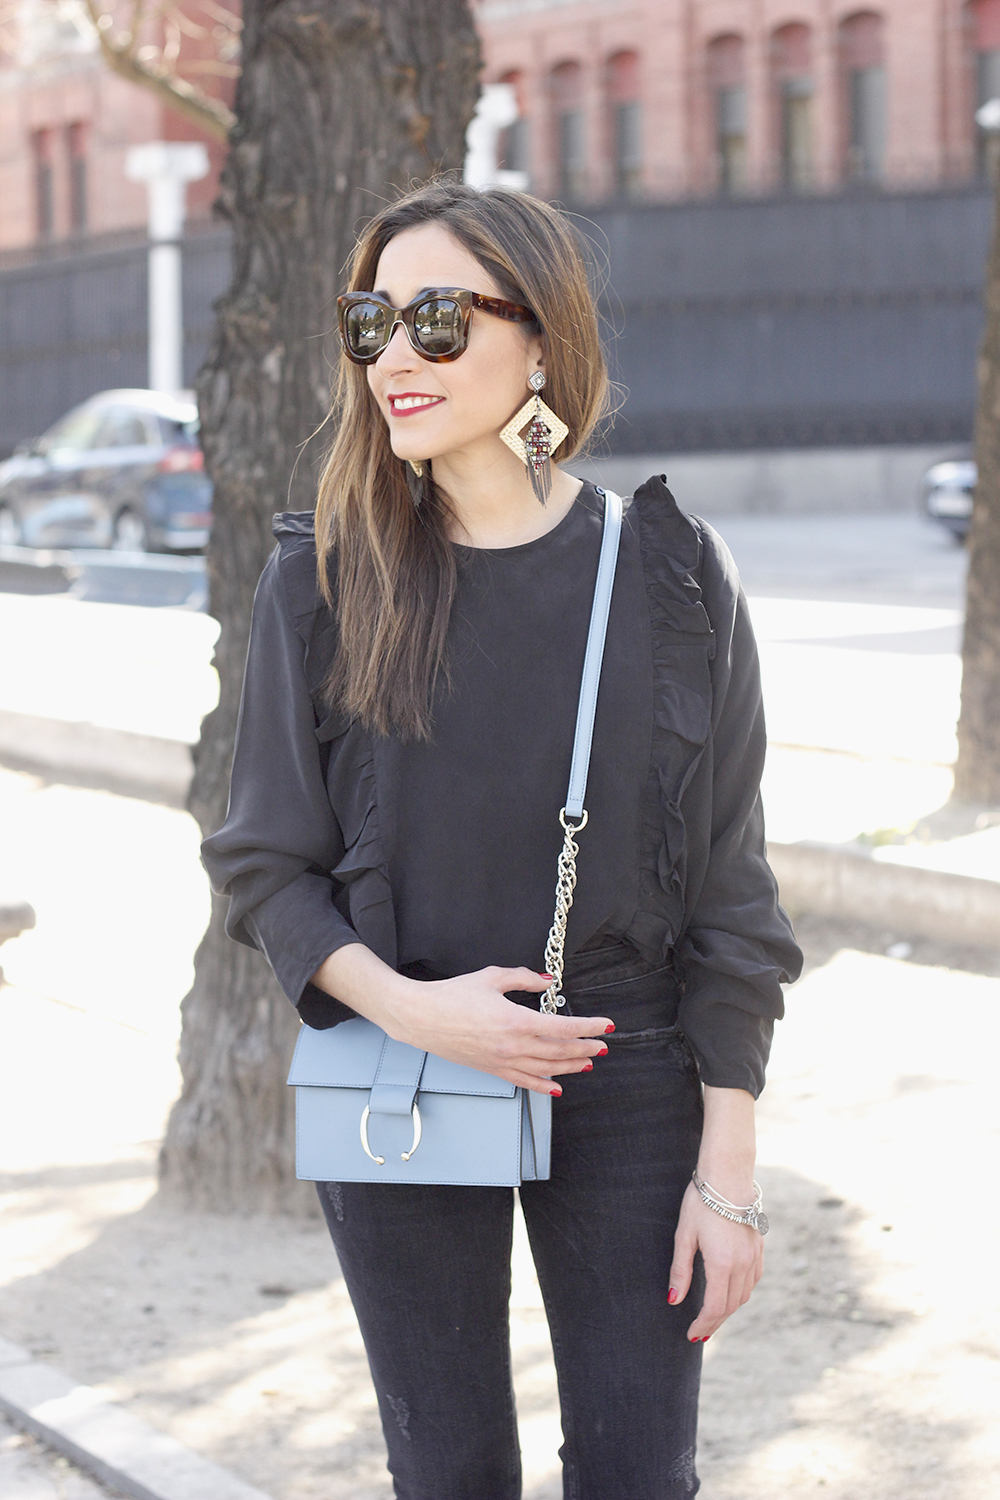 Black ruffled shirt black jeans uterqüe bag earrings sandals outfit style fashion céline sunnies spring03